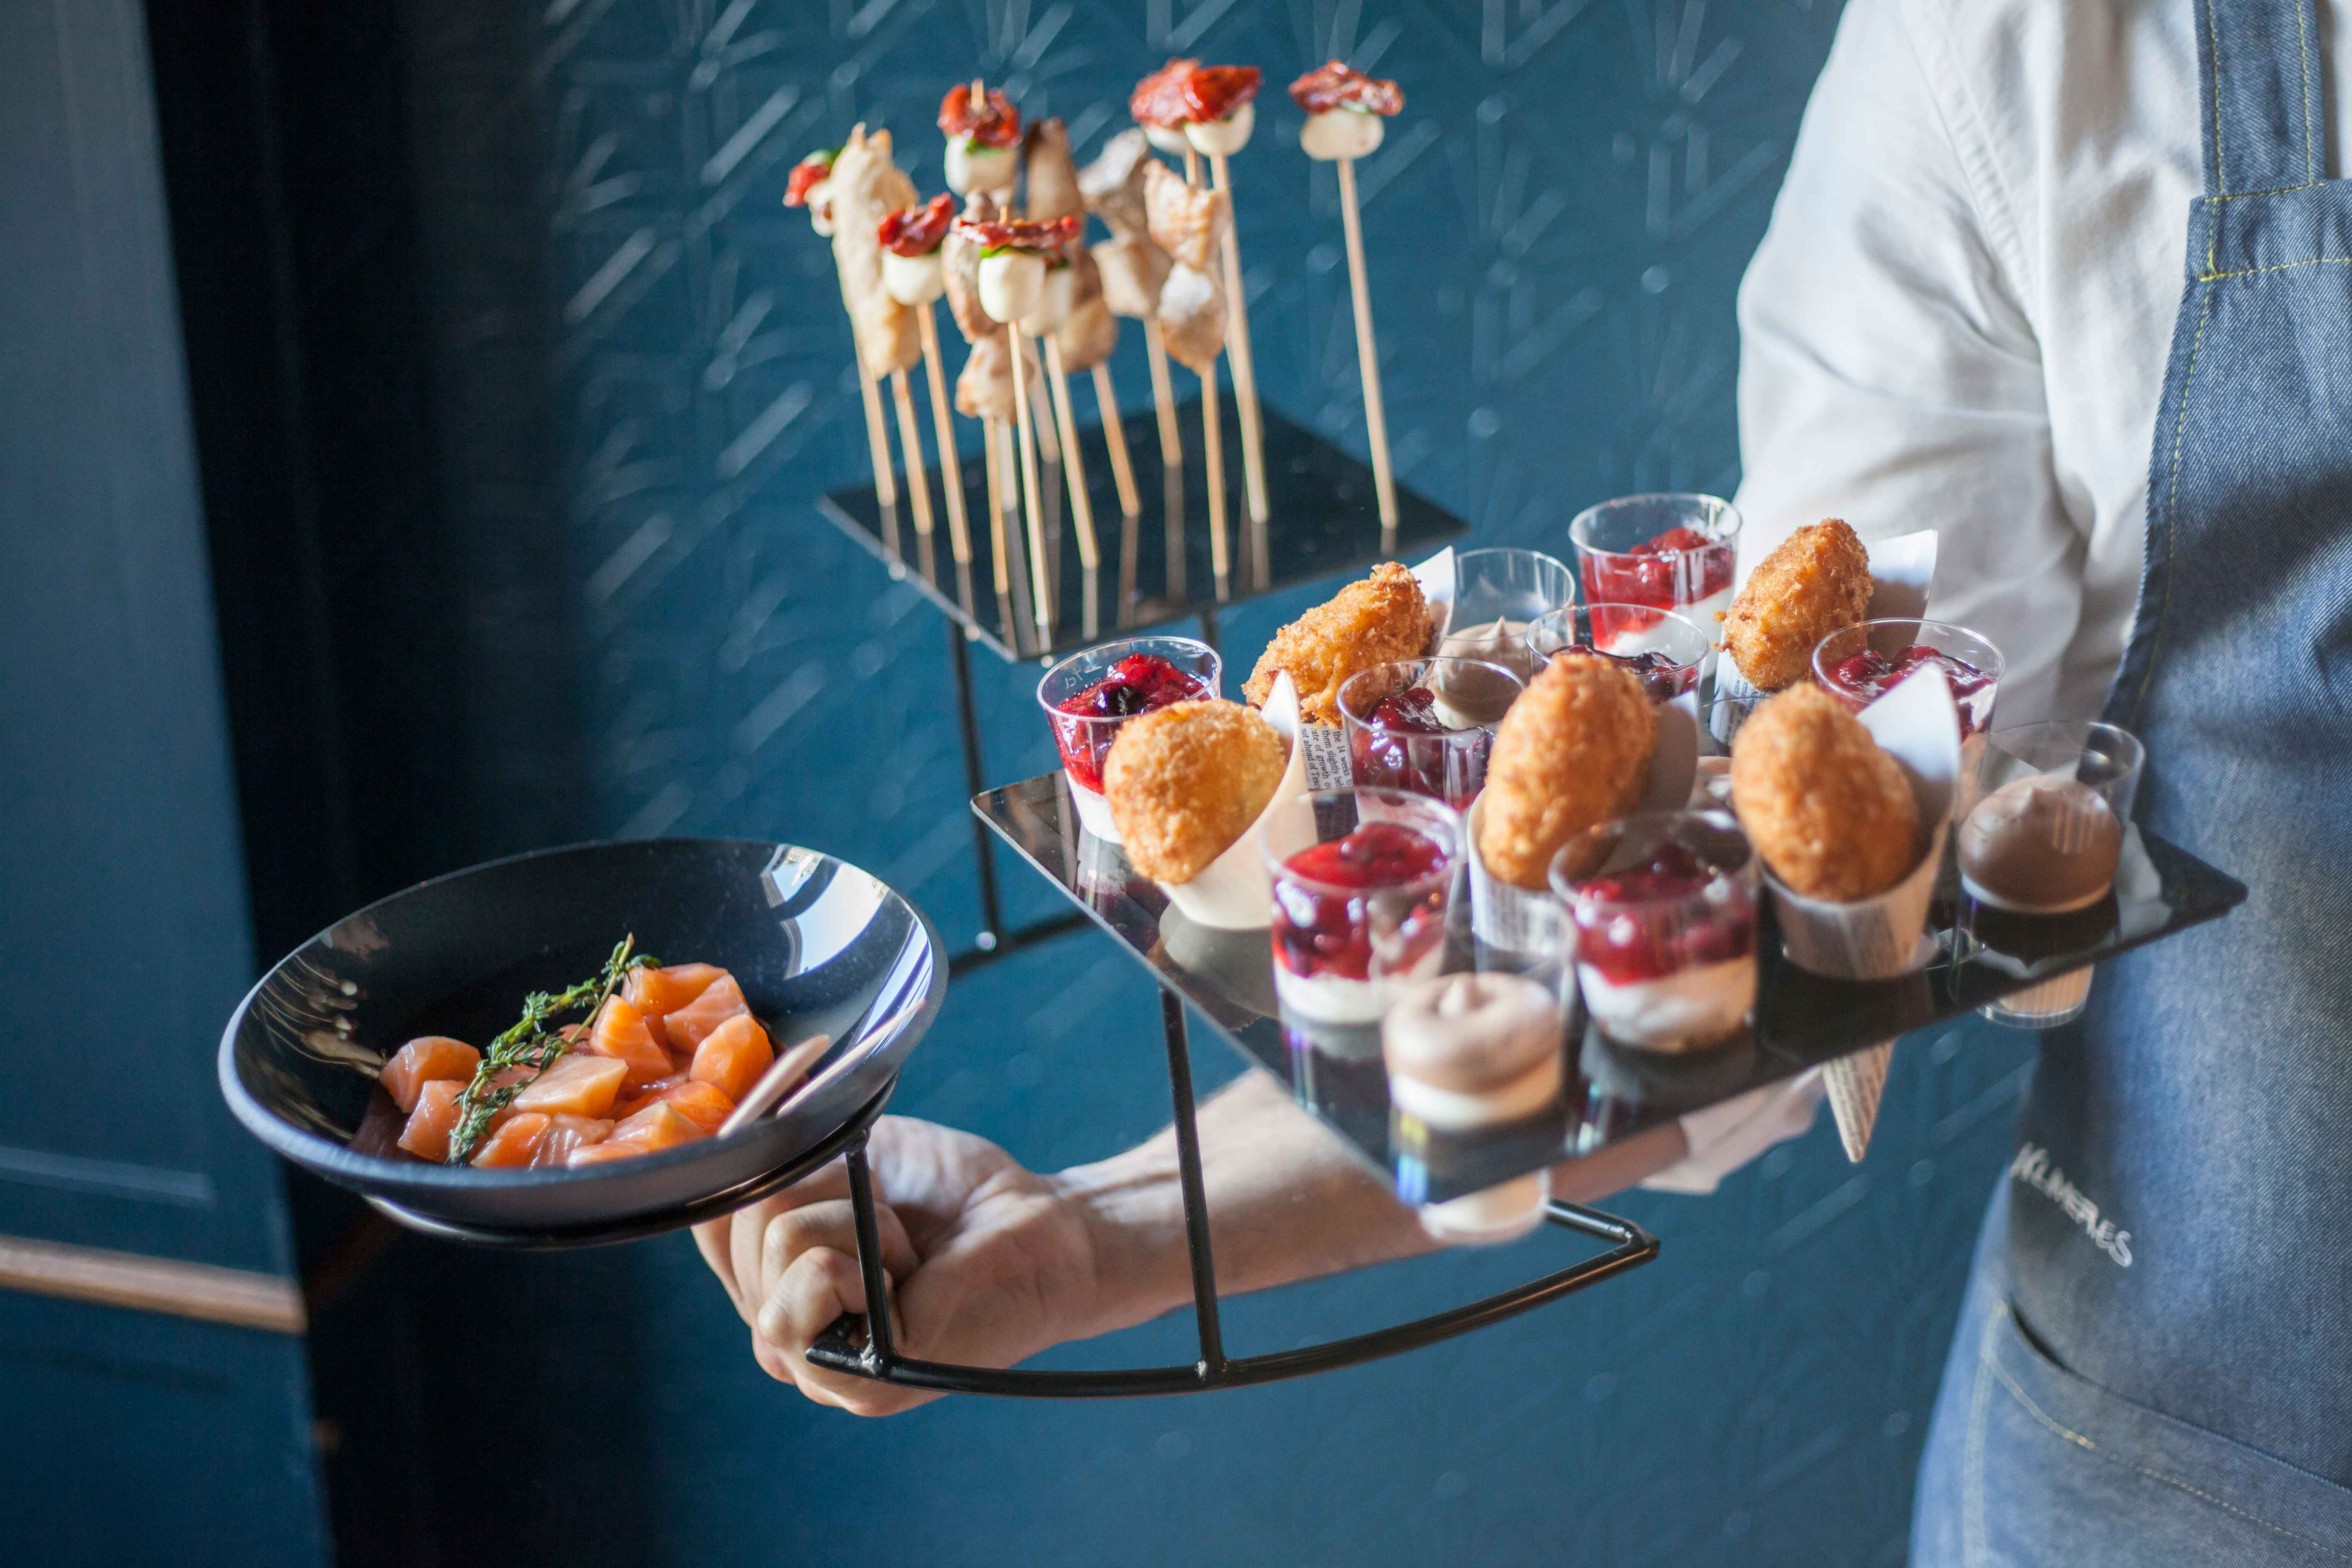 Expositor a 3 alturas para catering